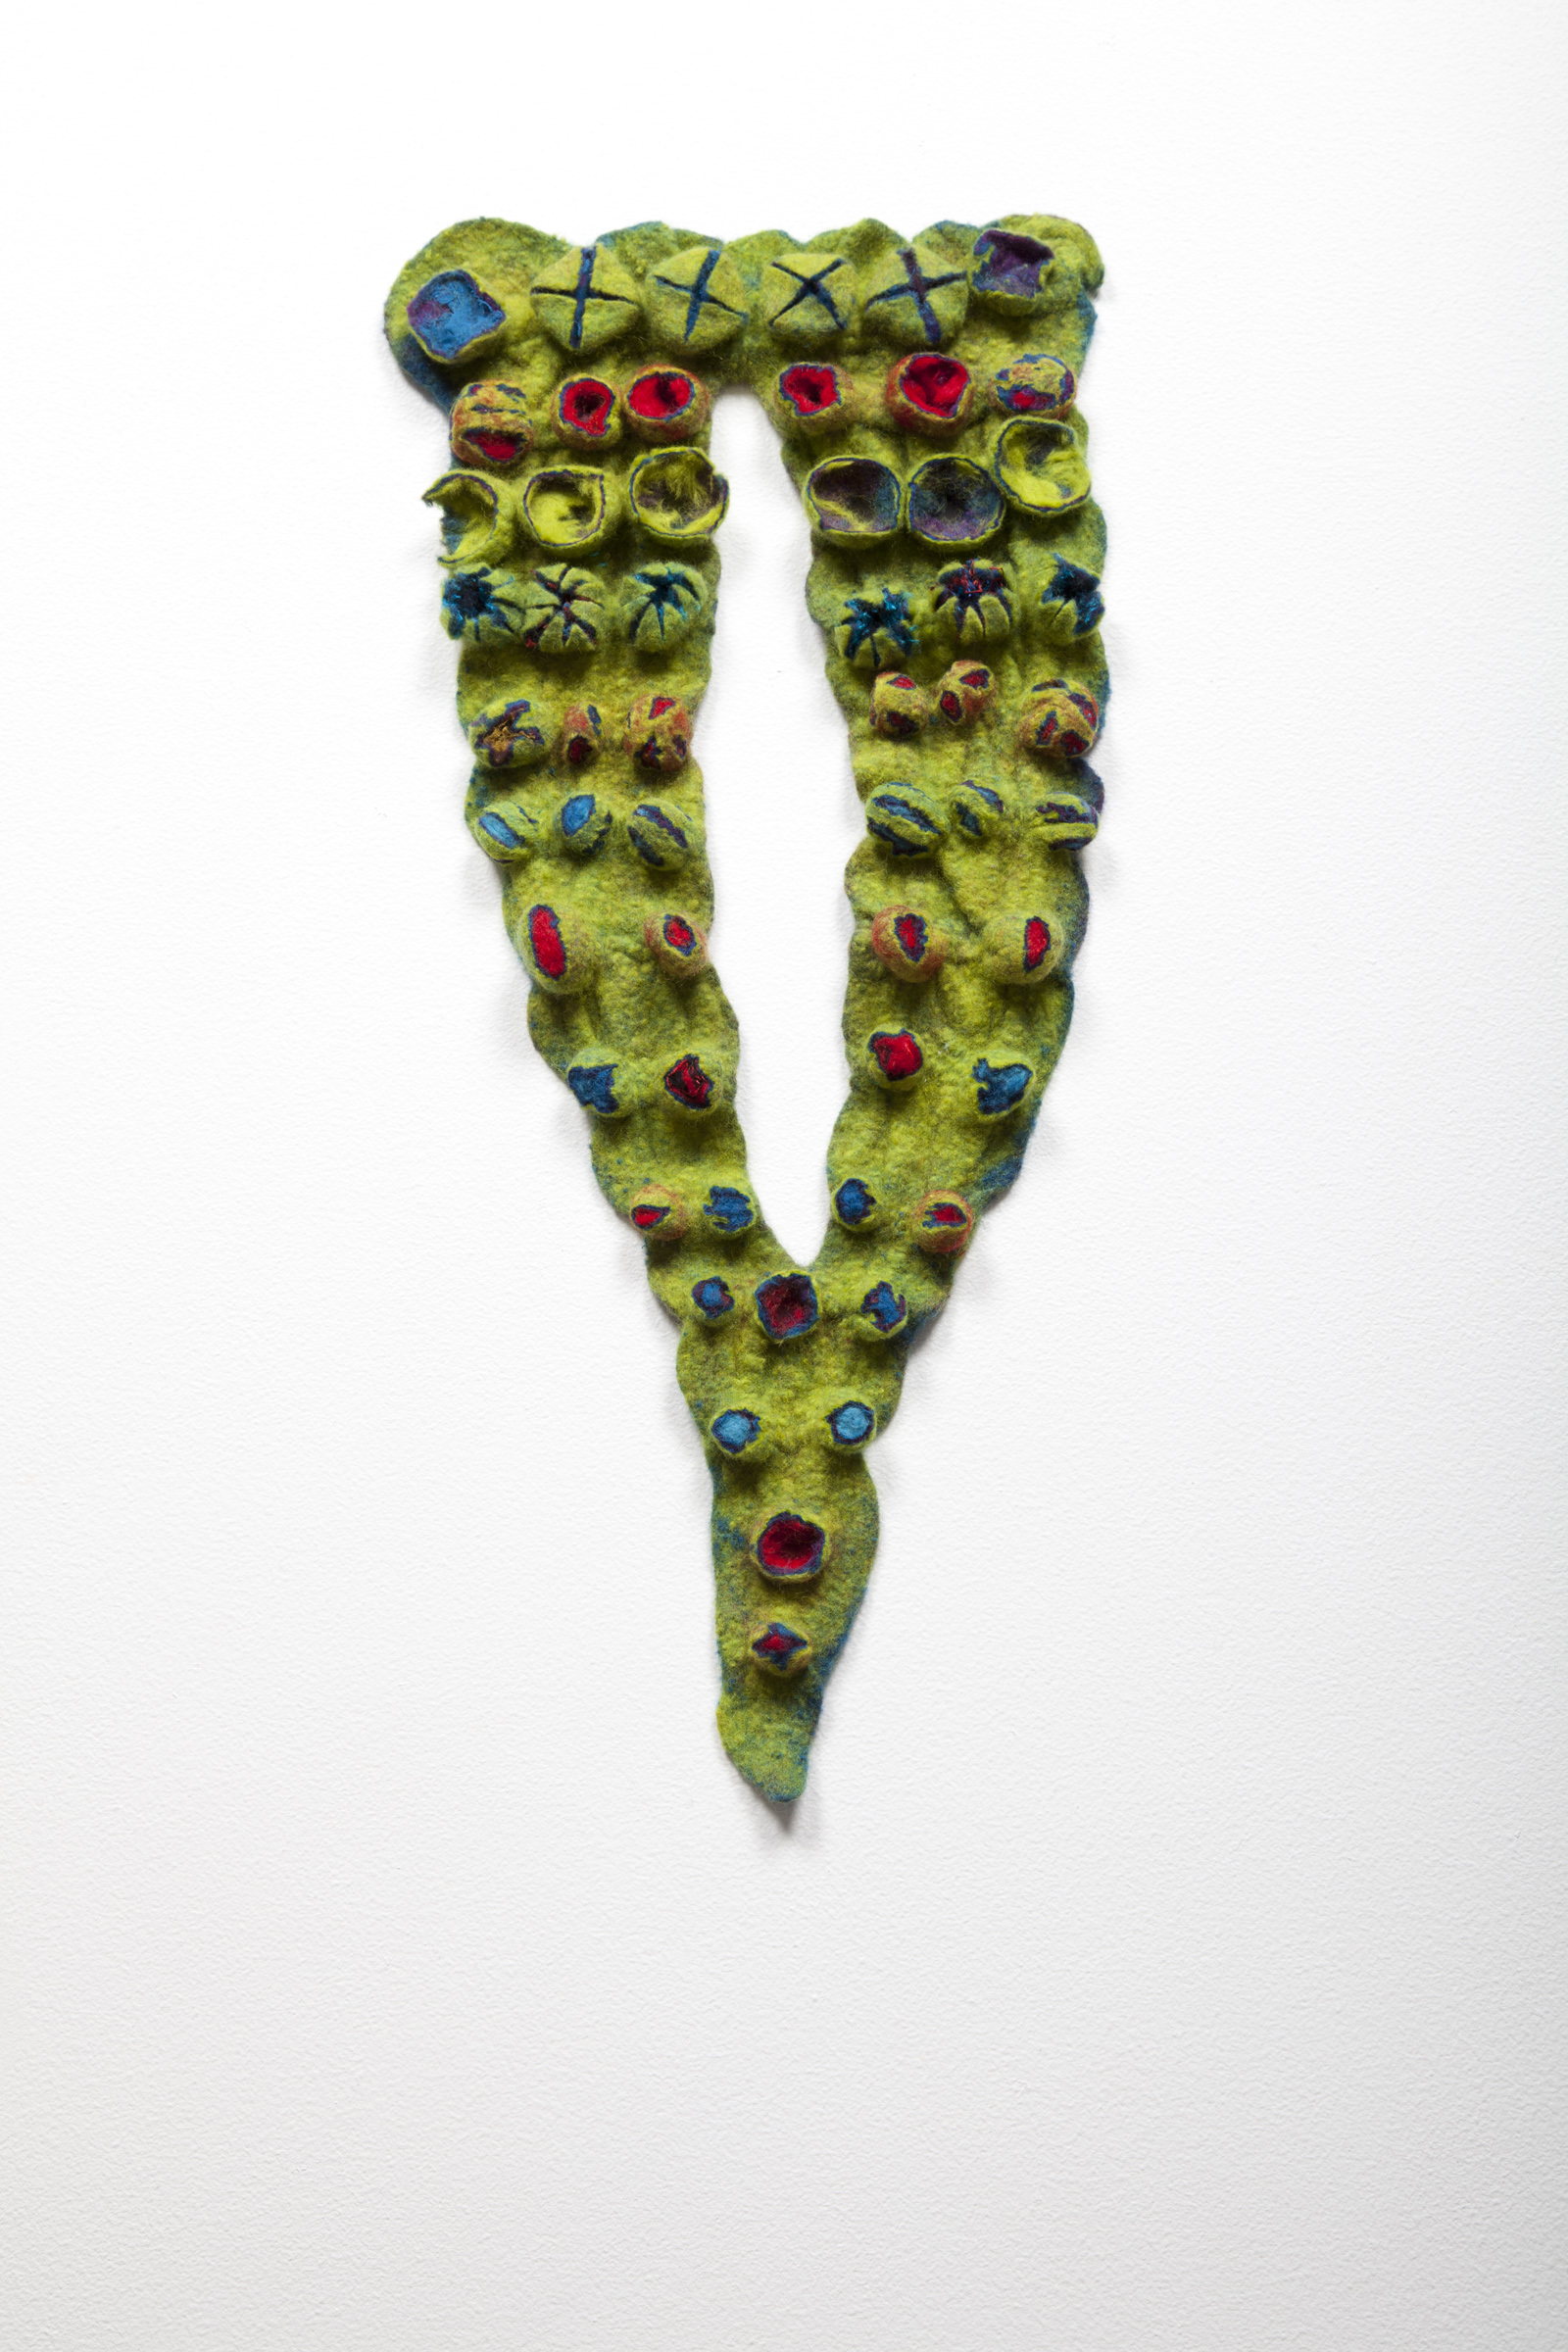 Homage to Marjolein (2012). Felted merino wool